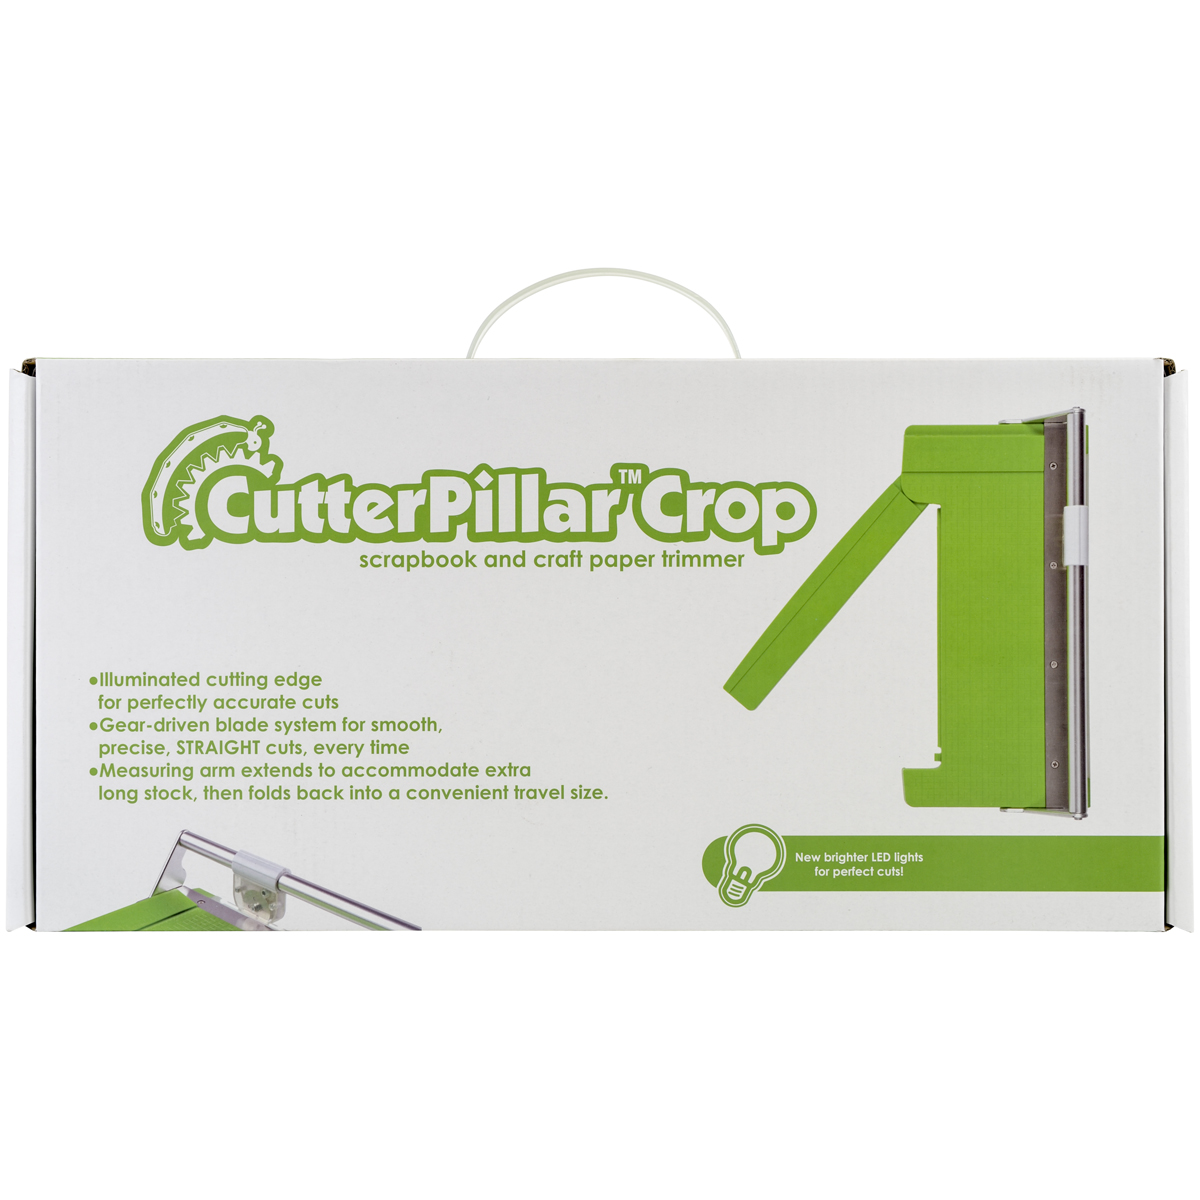 Cutterpillar Crop Paper Trimmer-